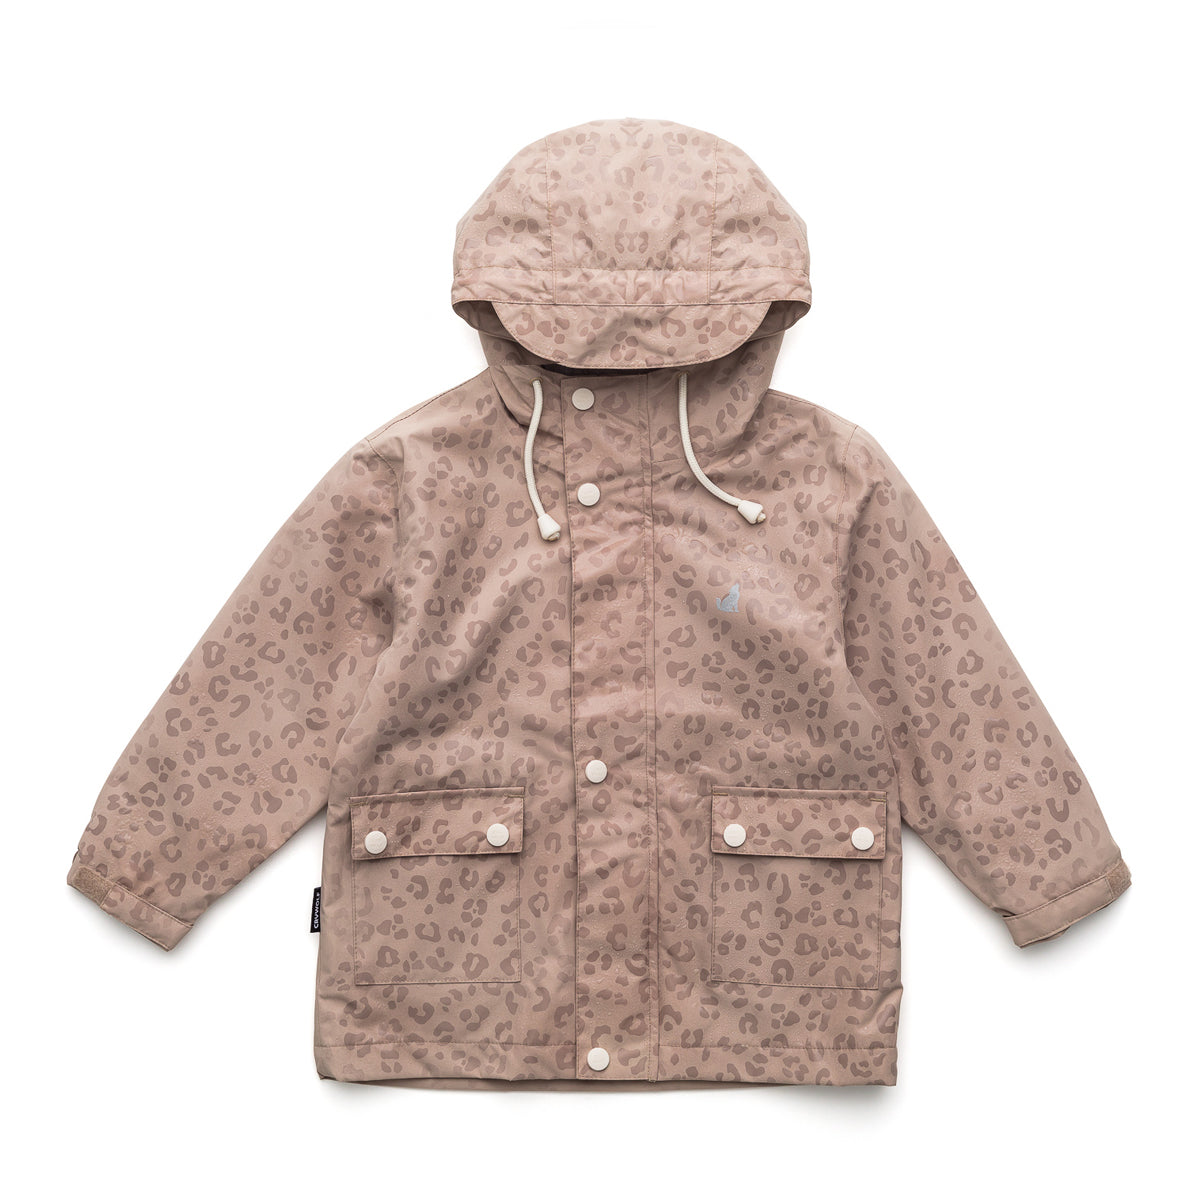 MAGIC JACKET Leopard Taupe 11-14yrs